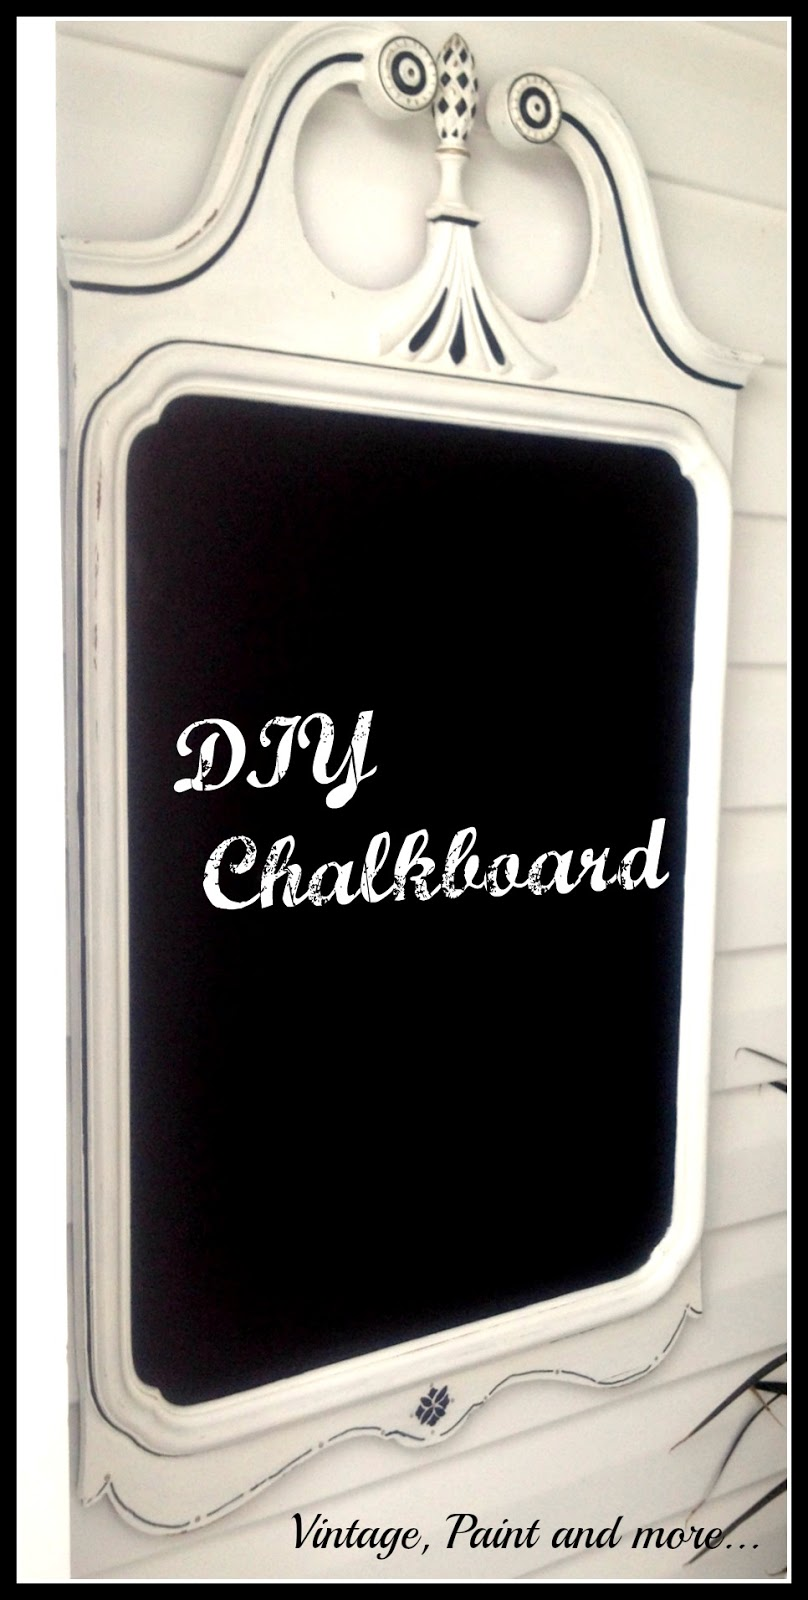 Vintage, Paint and more... Old mirror transformed into chalkboard with DIY chalkpaint